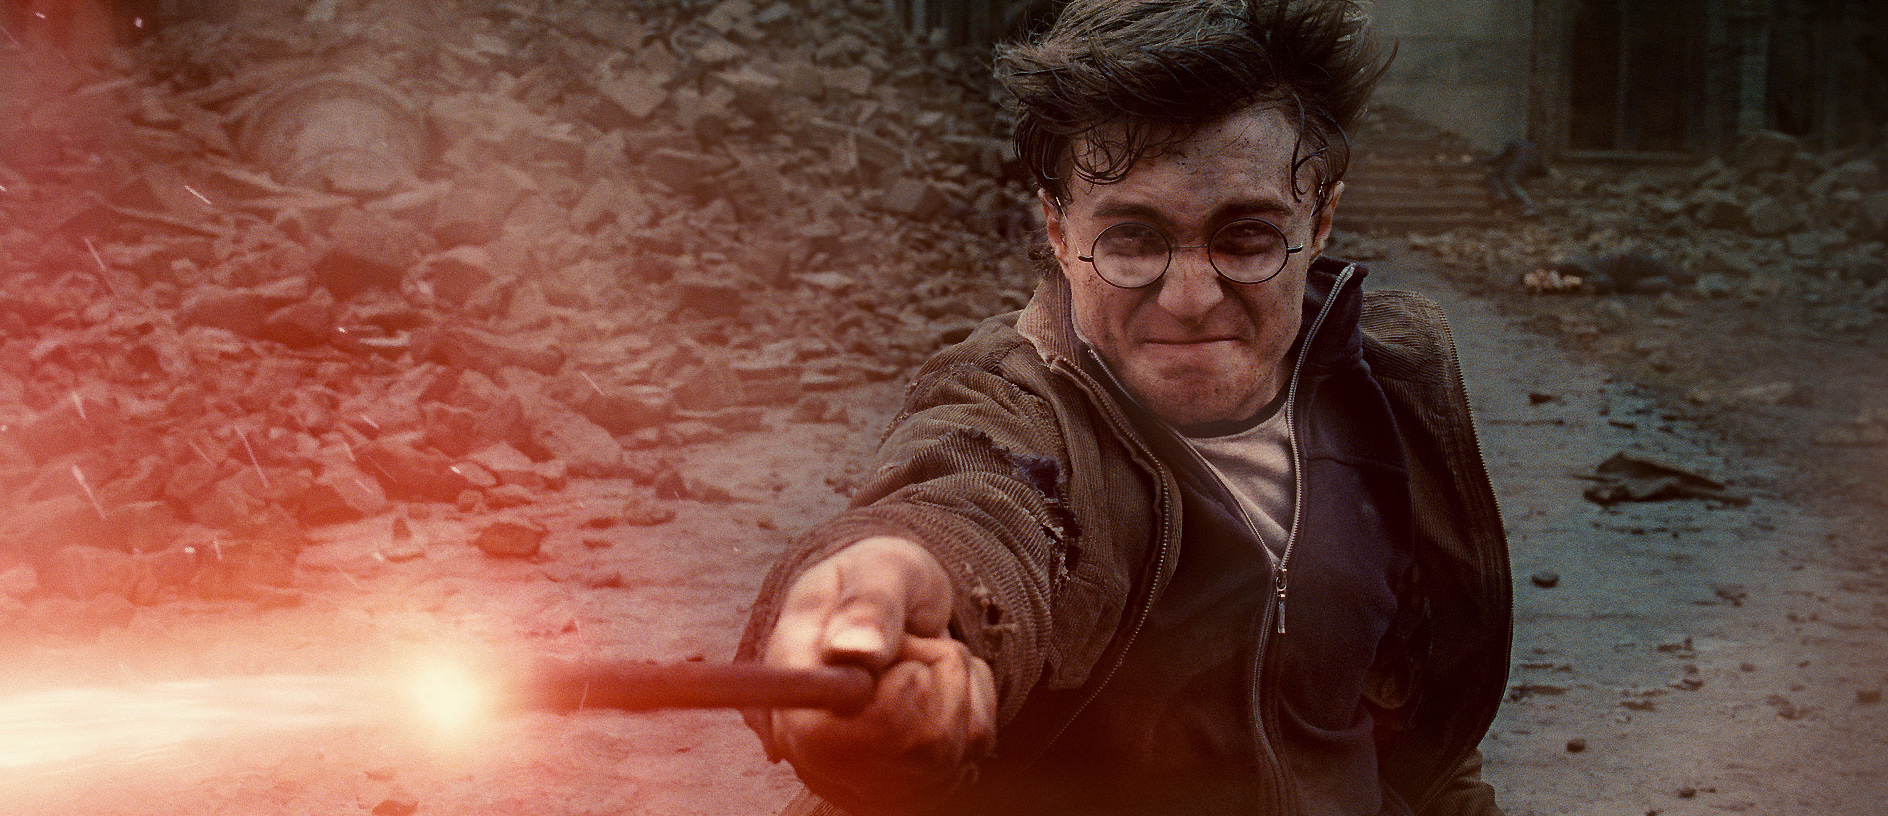 http://collider.com/wp-content/uploads/harry-potter-and-the-deathly-hallows-part-2-image-16.jpg